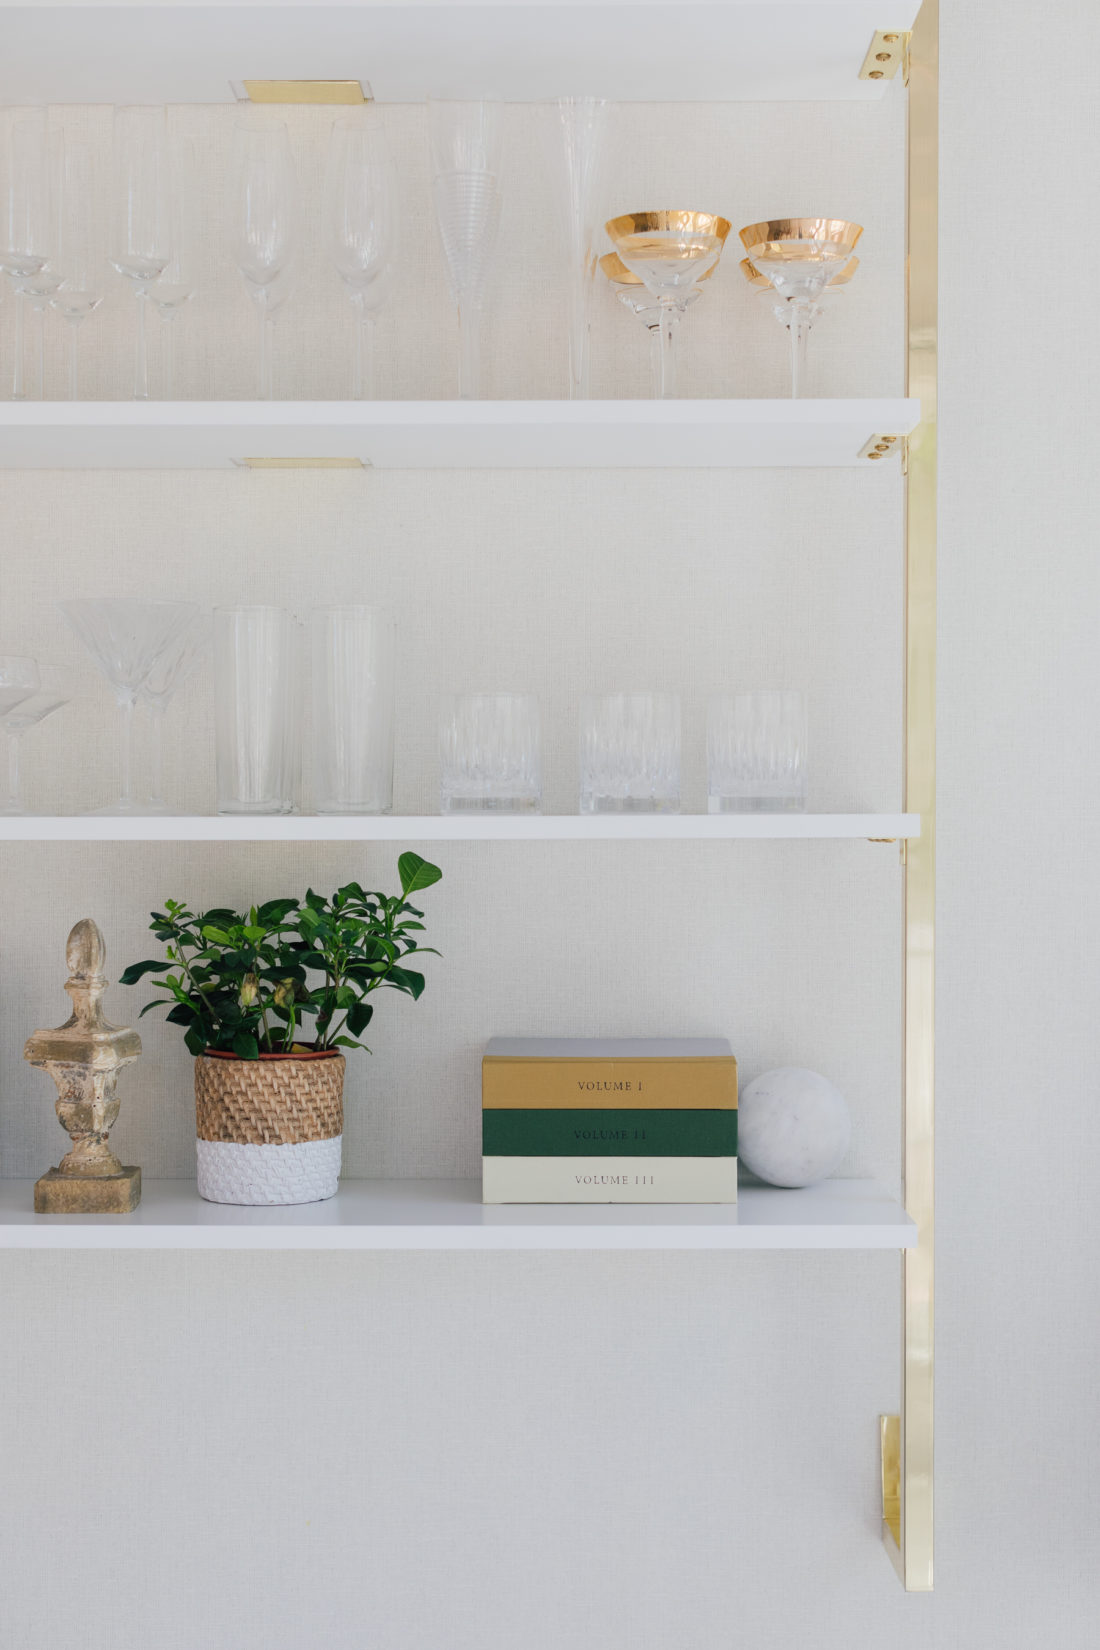 Wall shelves with entertaining pieces